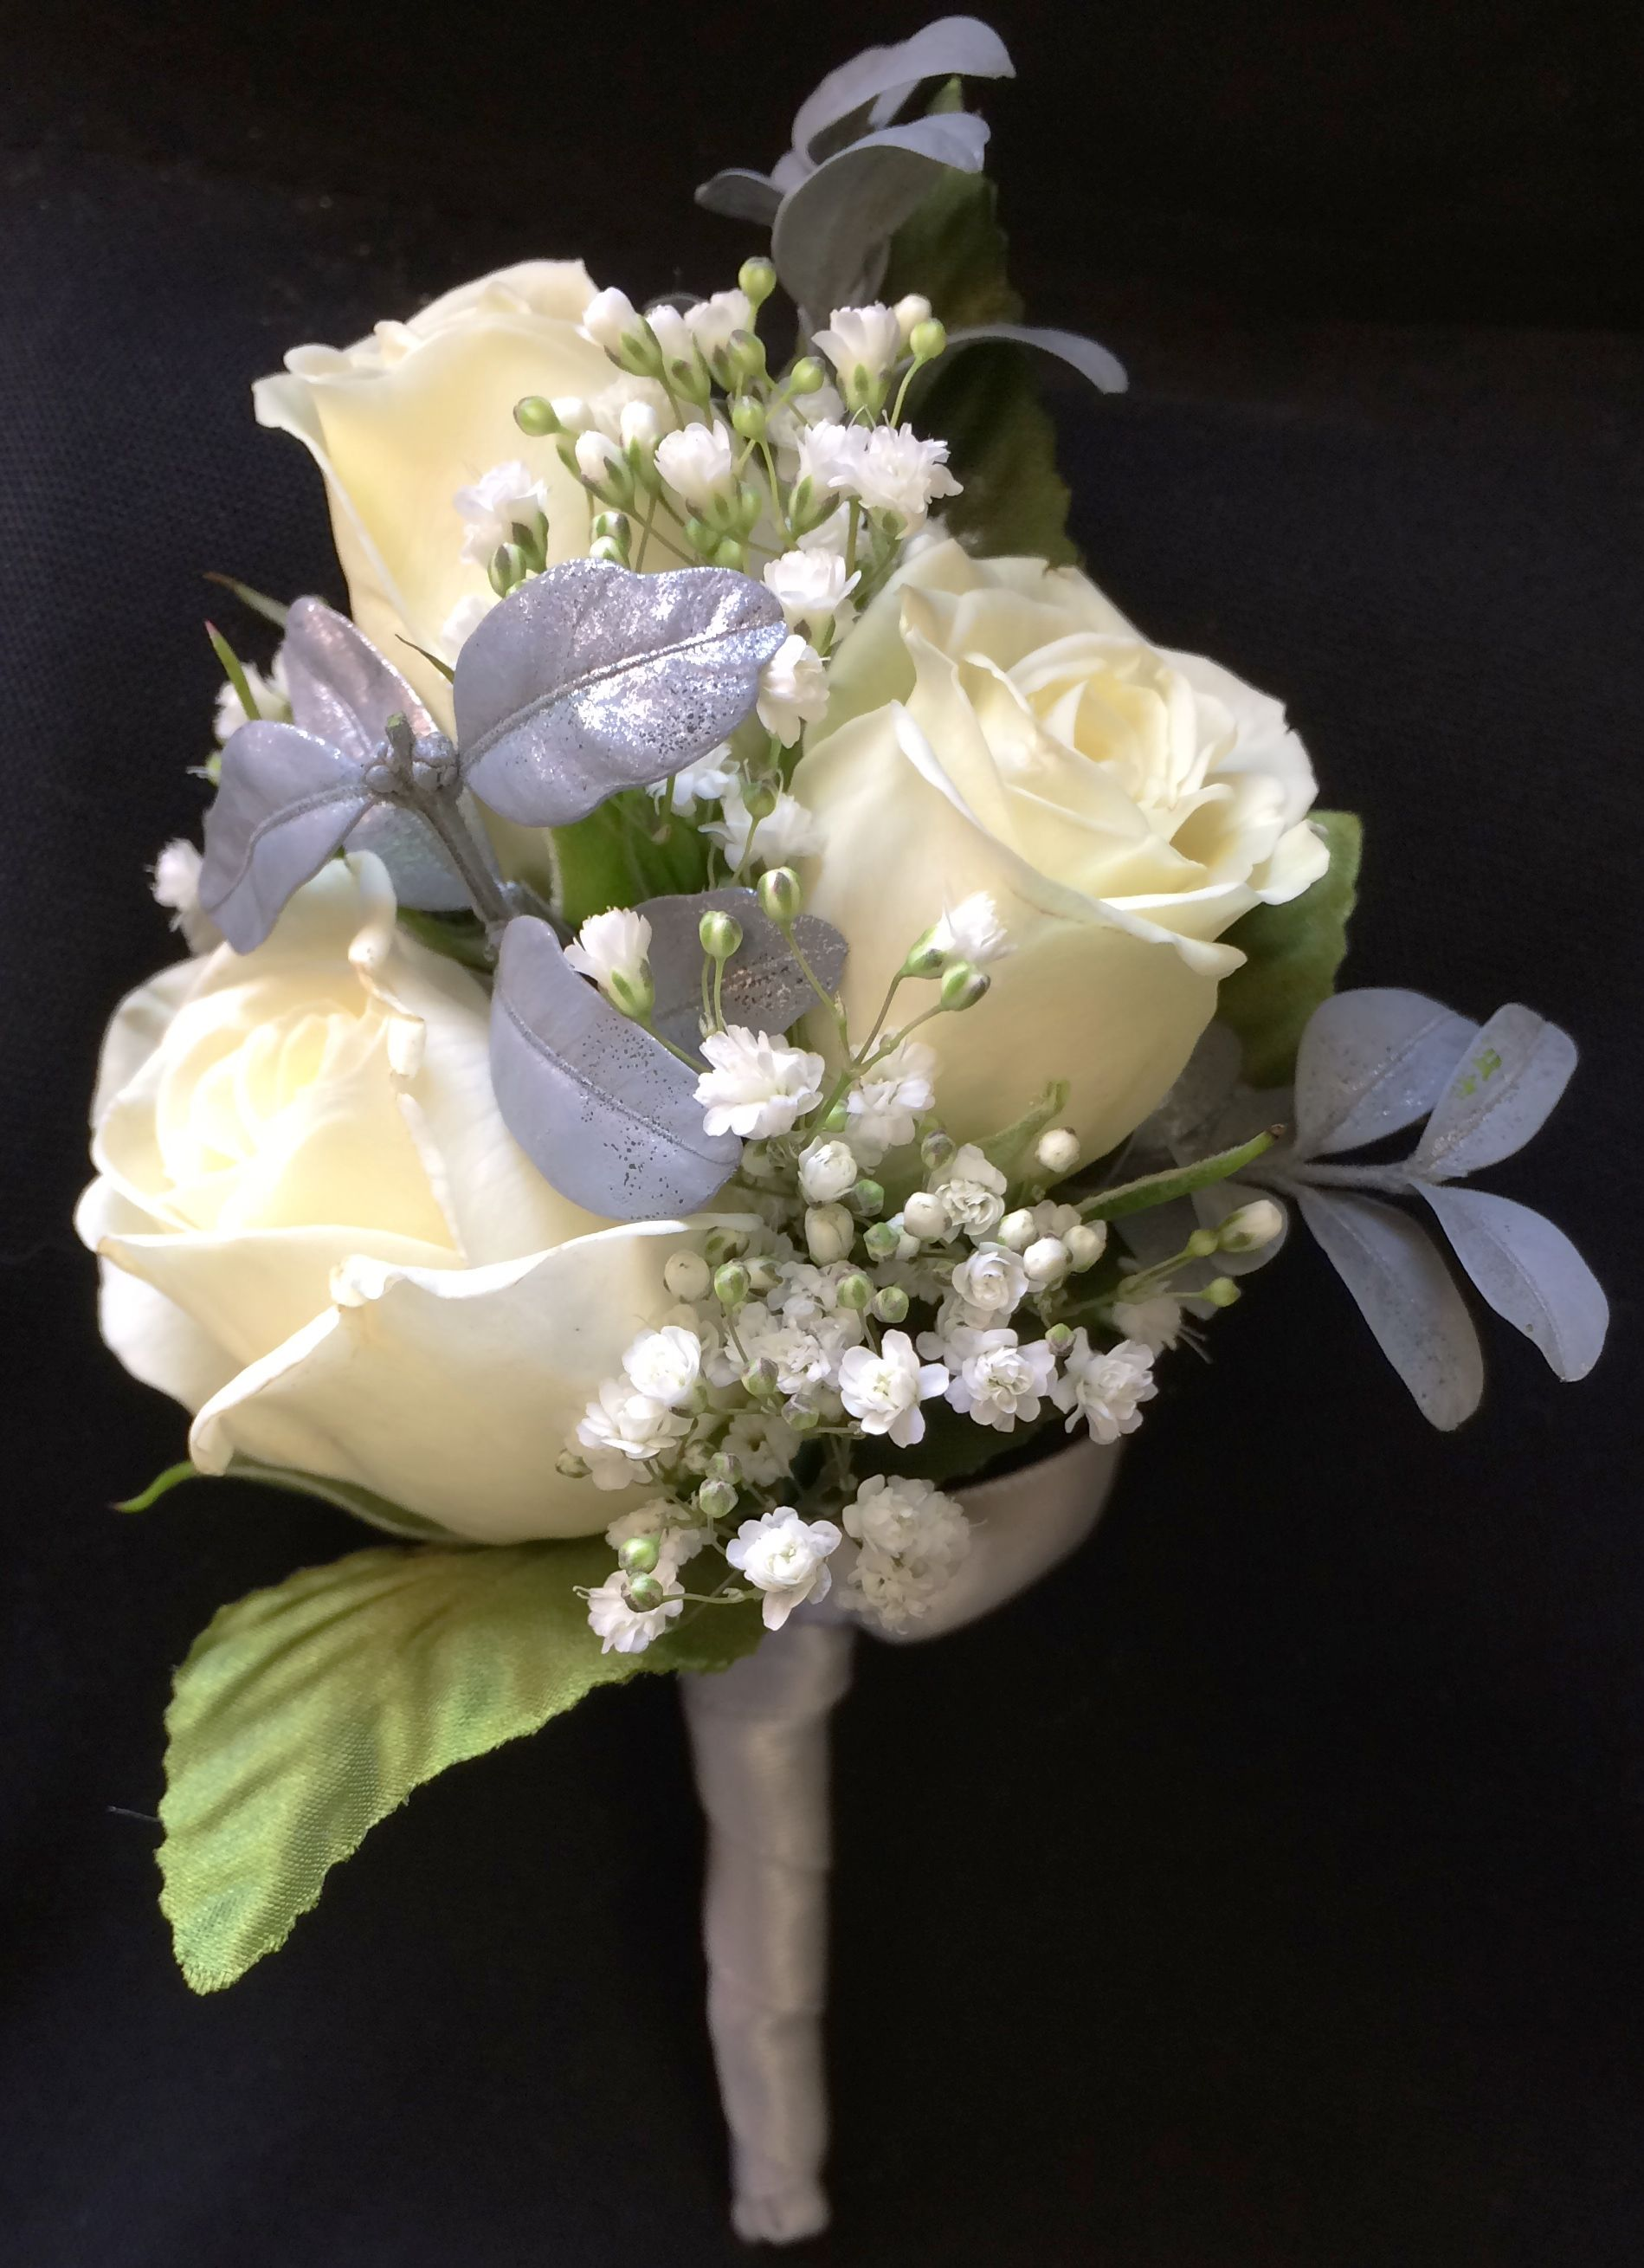 Radiance boutonniere by Kar-Fre Flowers features white spray roses accented by babies breath and silvery gray foliage and is stem wrapped in a creamy white to match the roses.